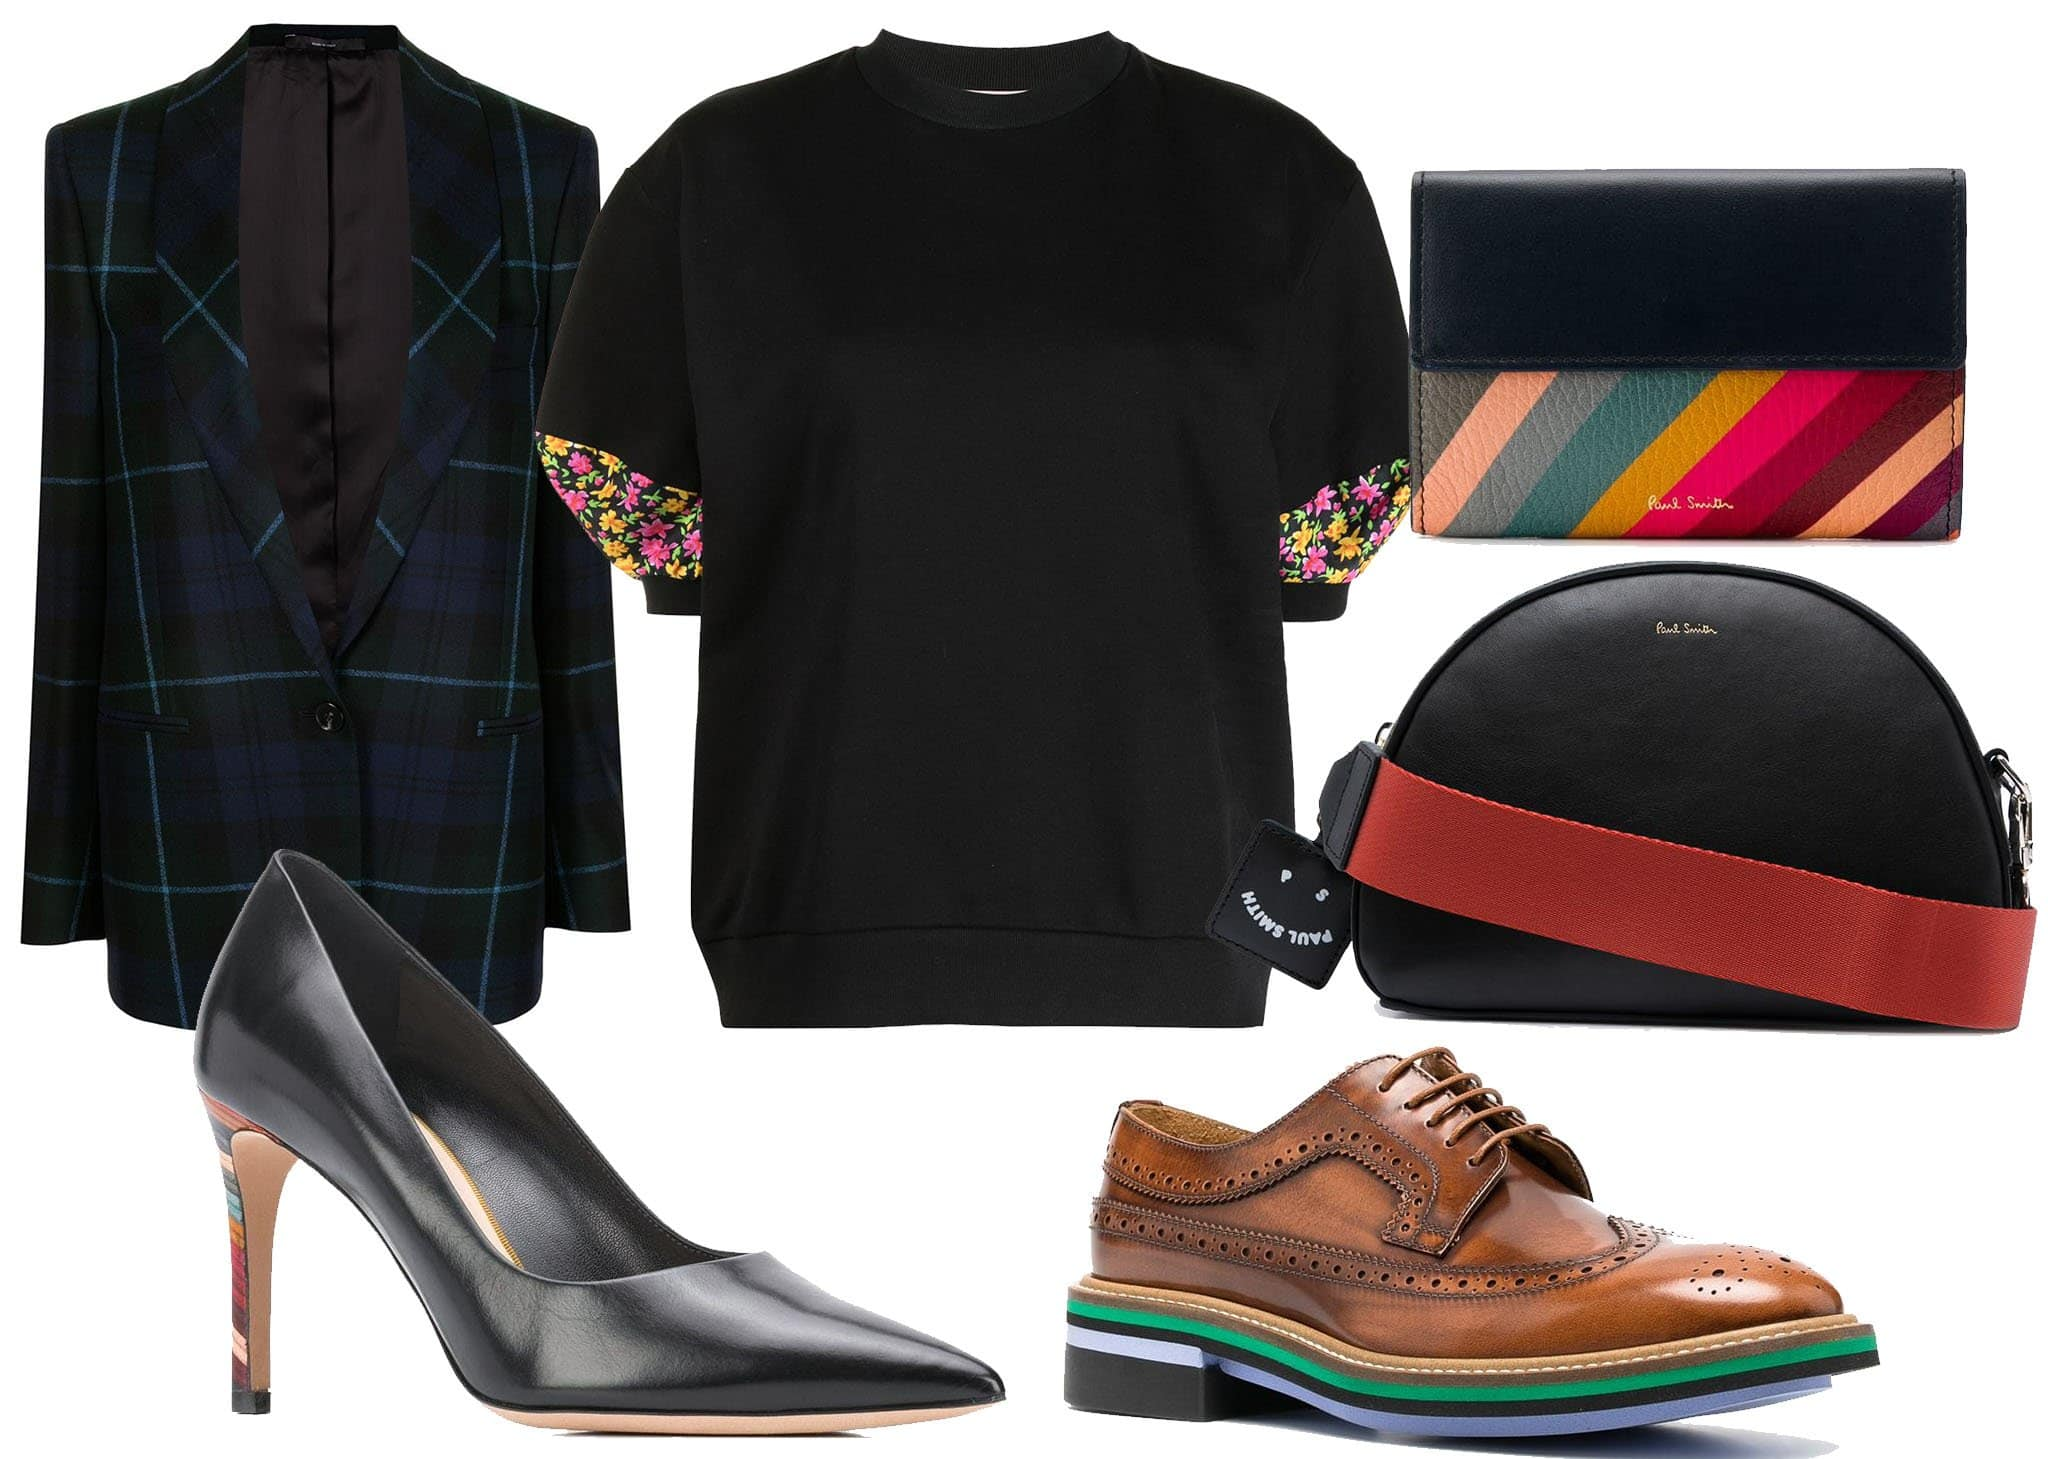 Paul Smith offers clothes, shoes, and accessories